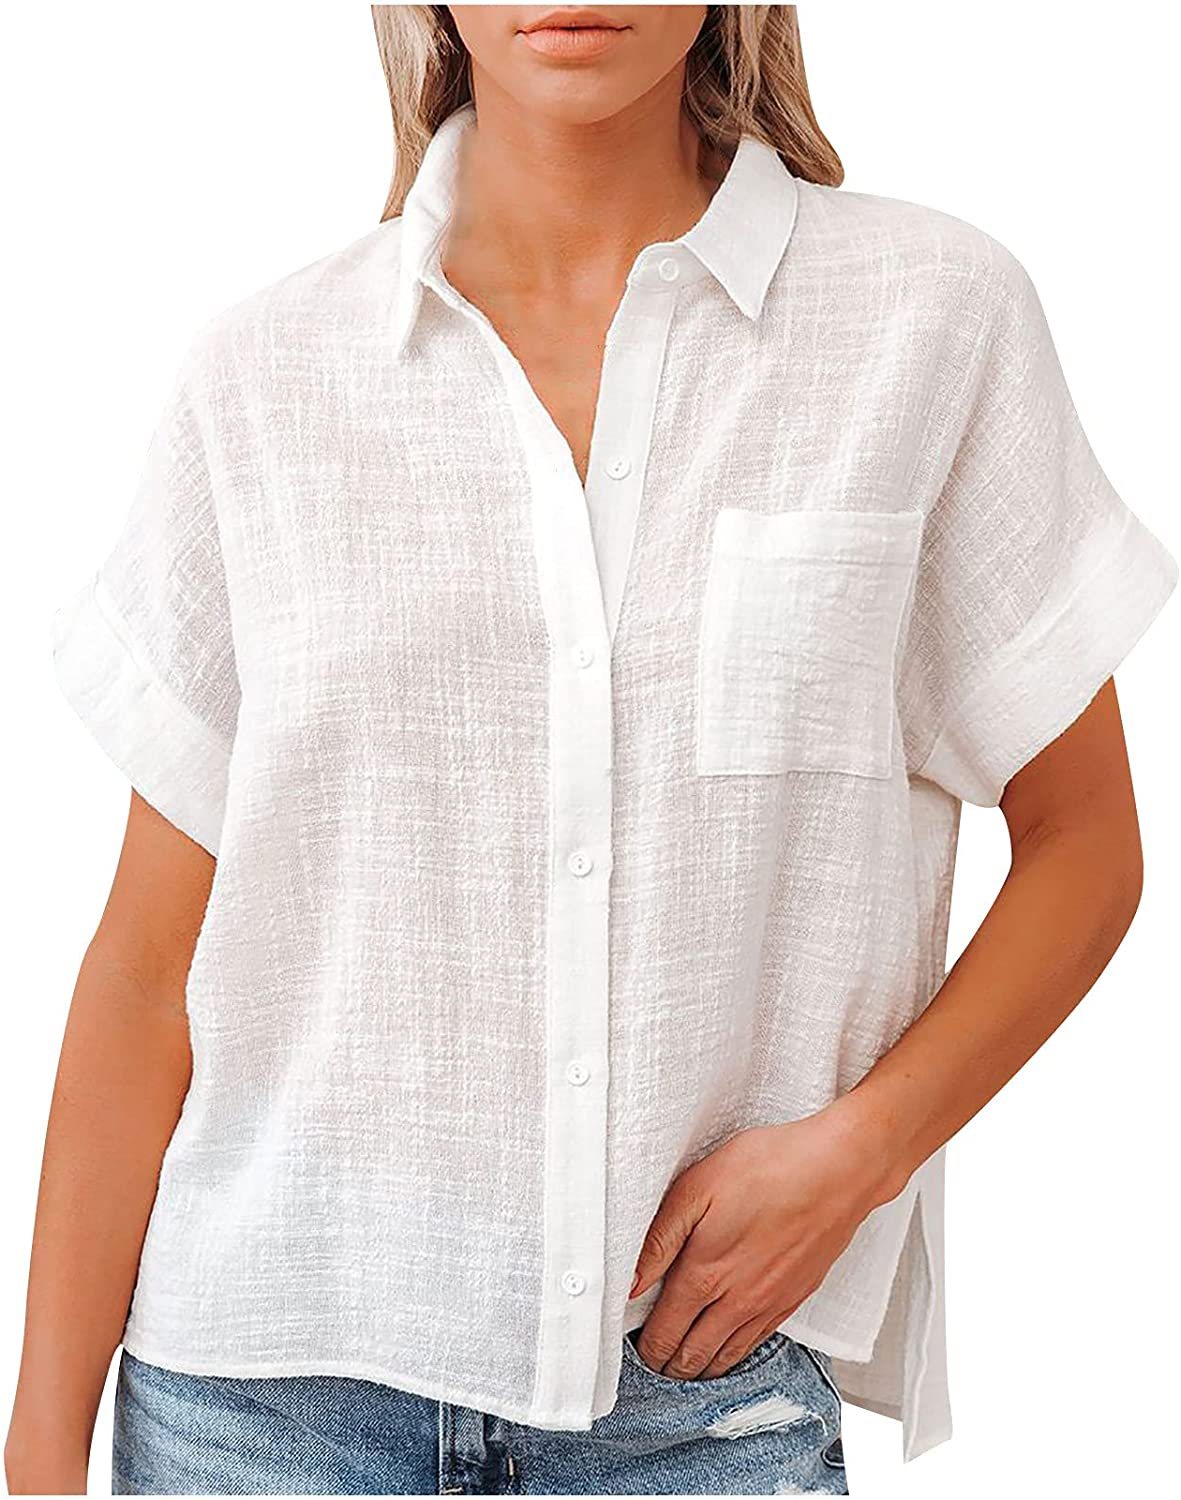 Women Cotton and Linen Shirt Solid Color Button Down Lapel Pocket Short Sleeve Summer Ladies Office Tops Blouses